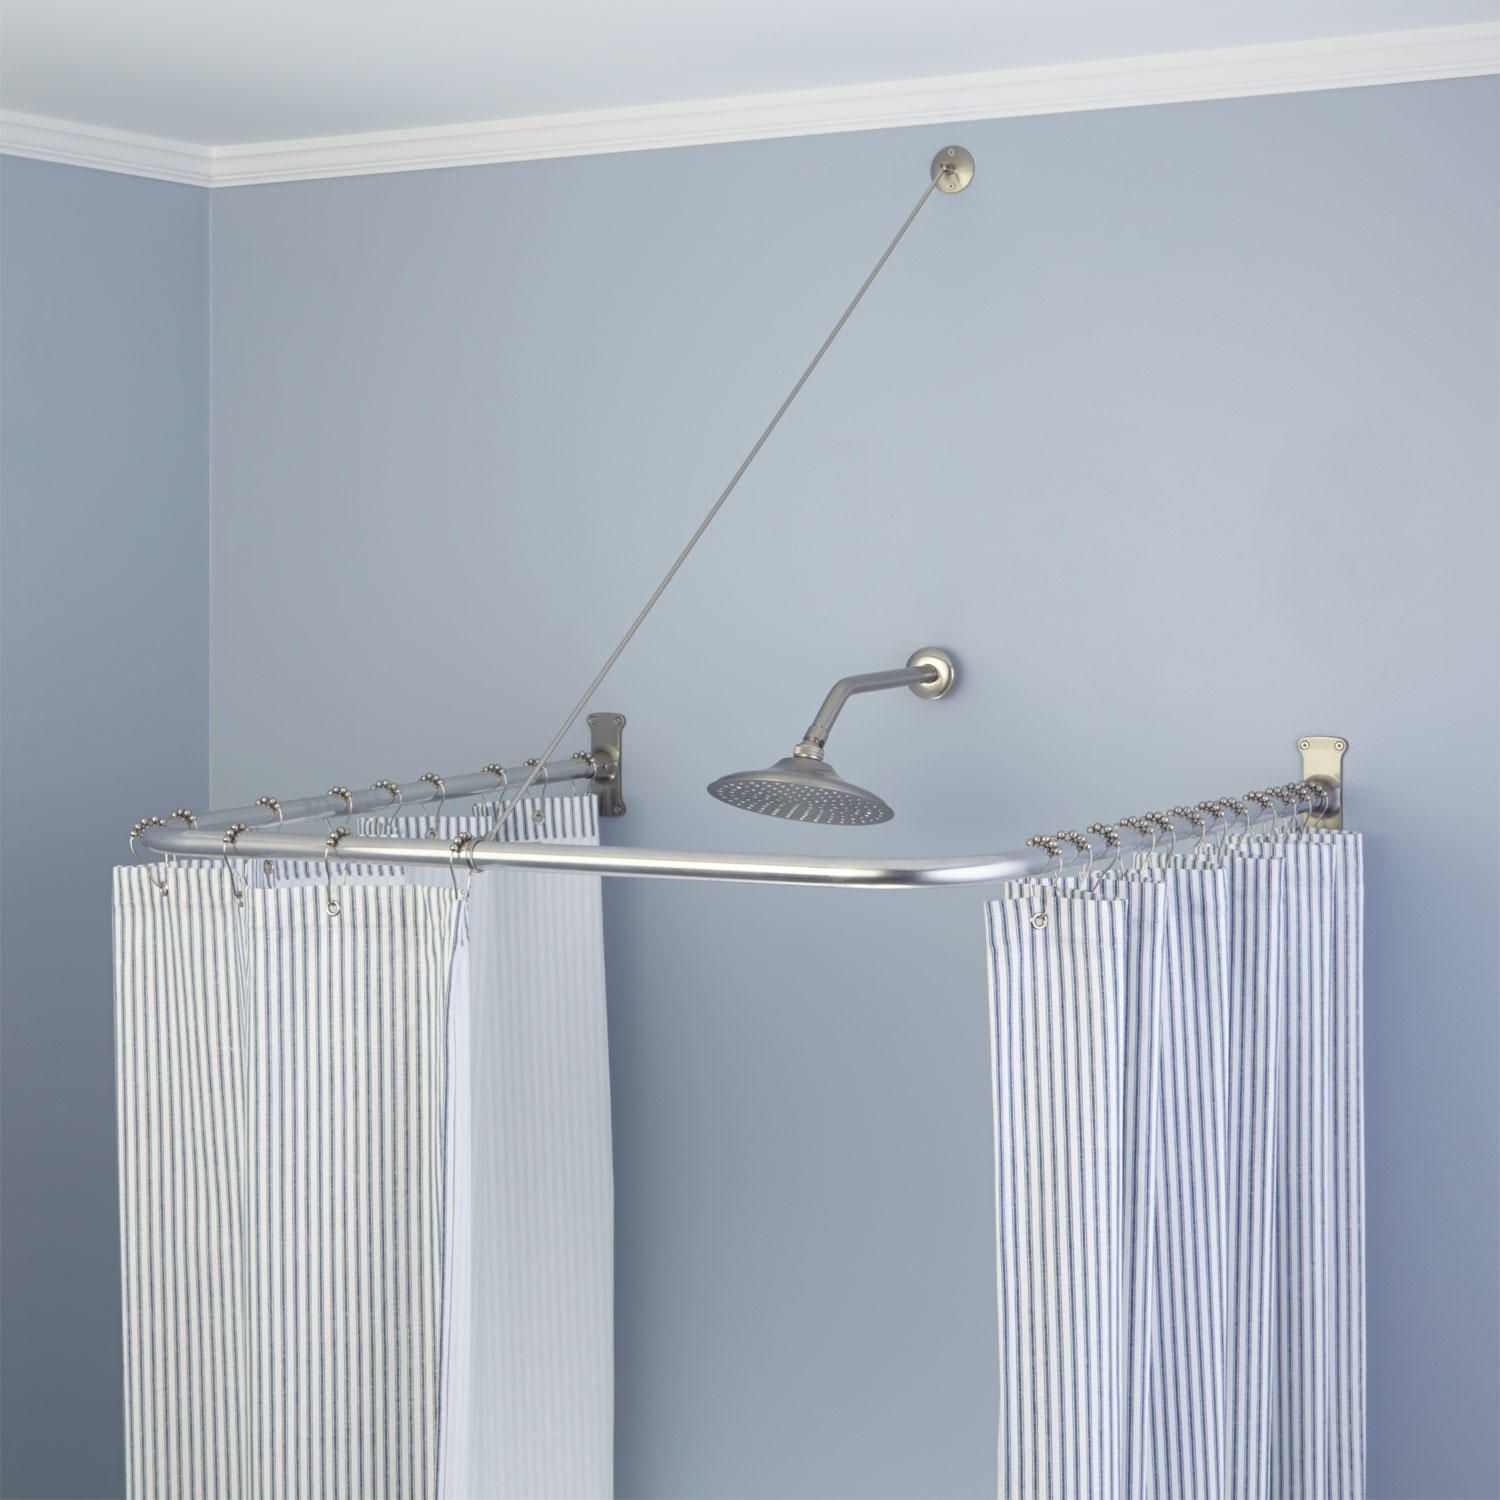 U-Shaped Shower Curtain Rod | Shower curtain rods, Brushed nickel ...